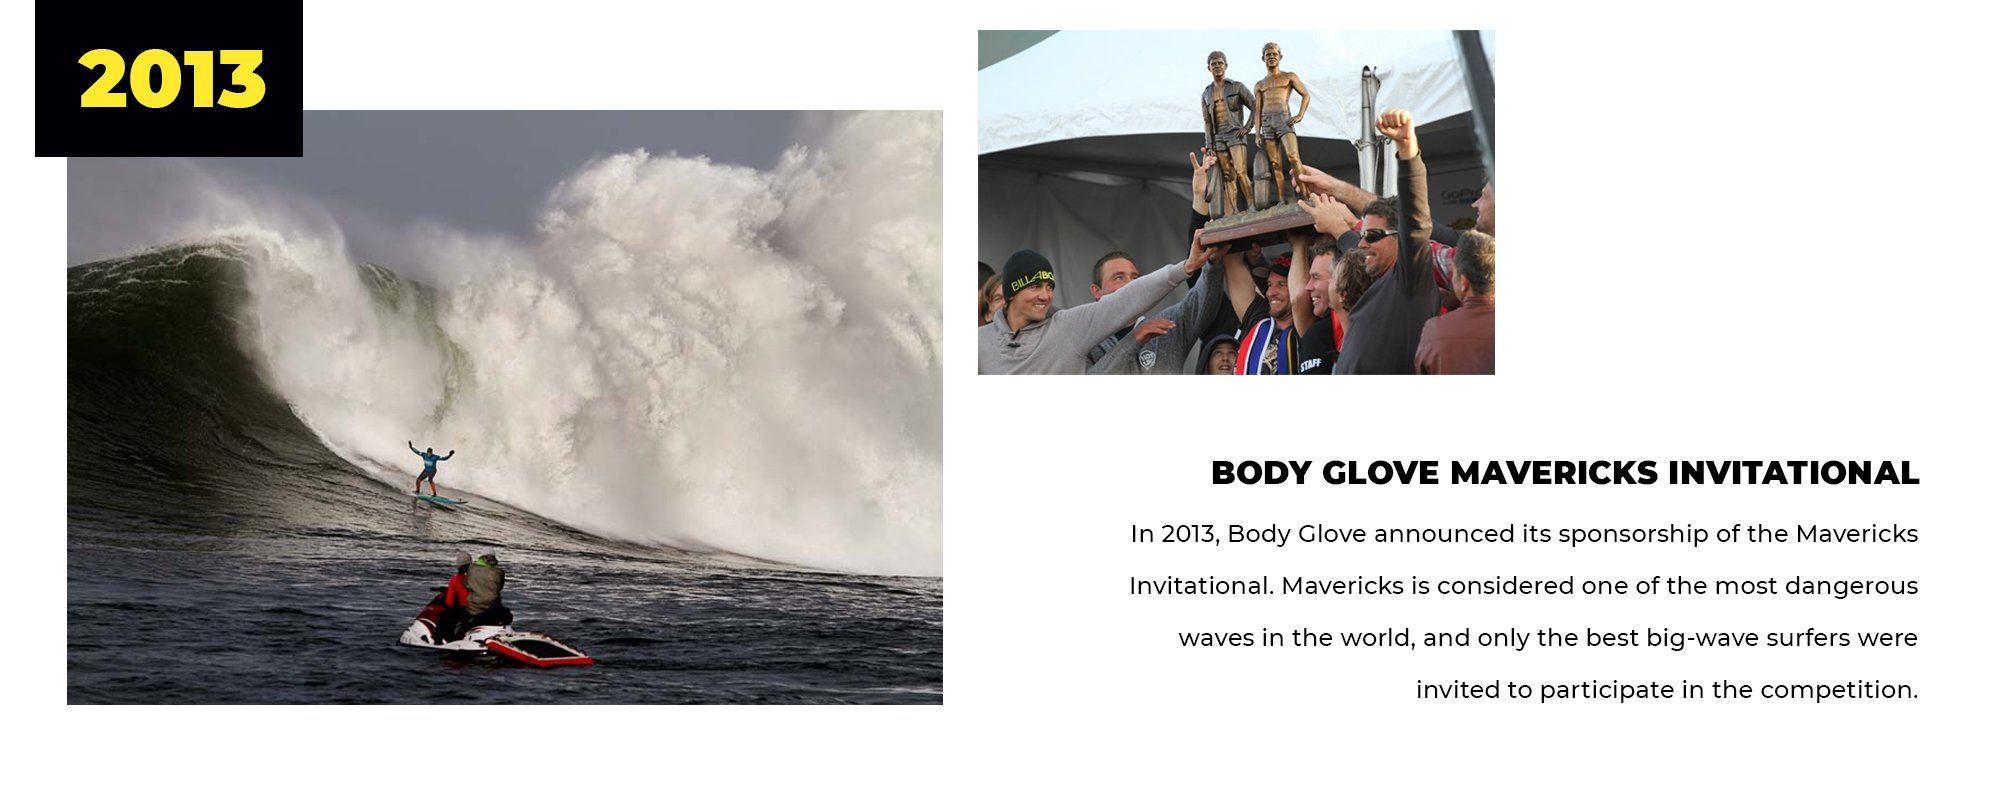 2013 | Body Glove Mavericks Invitational | In 2013, Body Glove announced its sponsorship of the Mavericks Invitational. Mavericks is considered one of the most dangerous waves in the world, and only the best big-wave surfers were invited to participate in the competition.